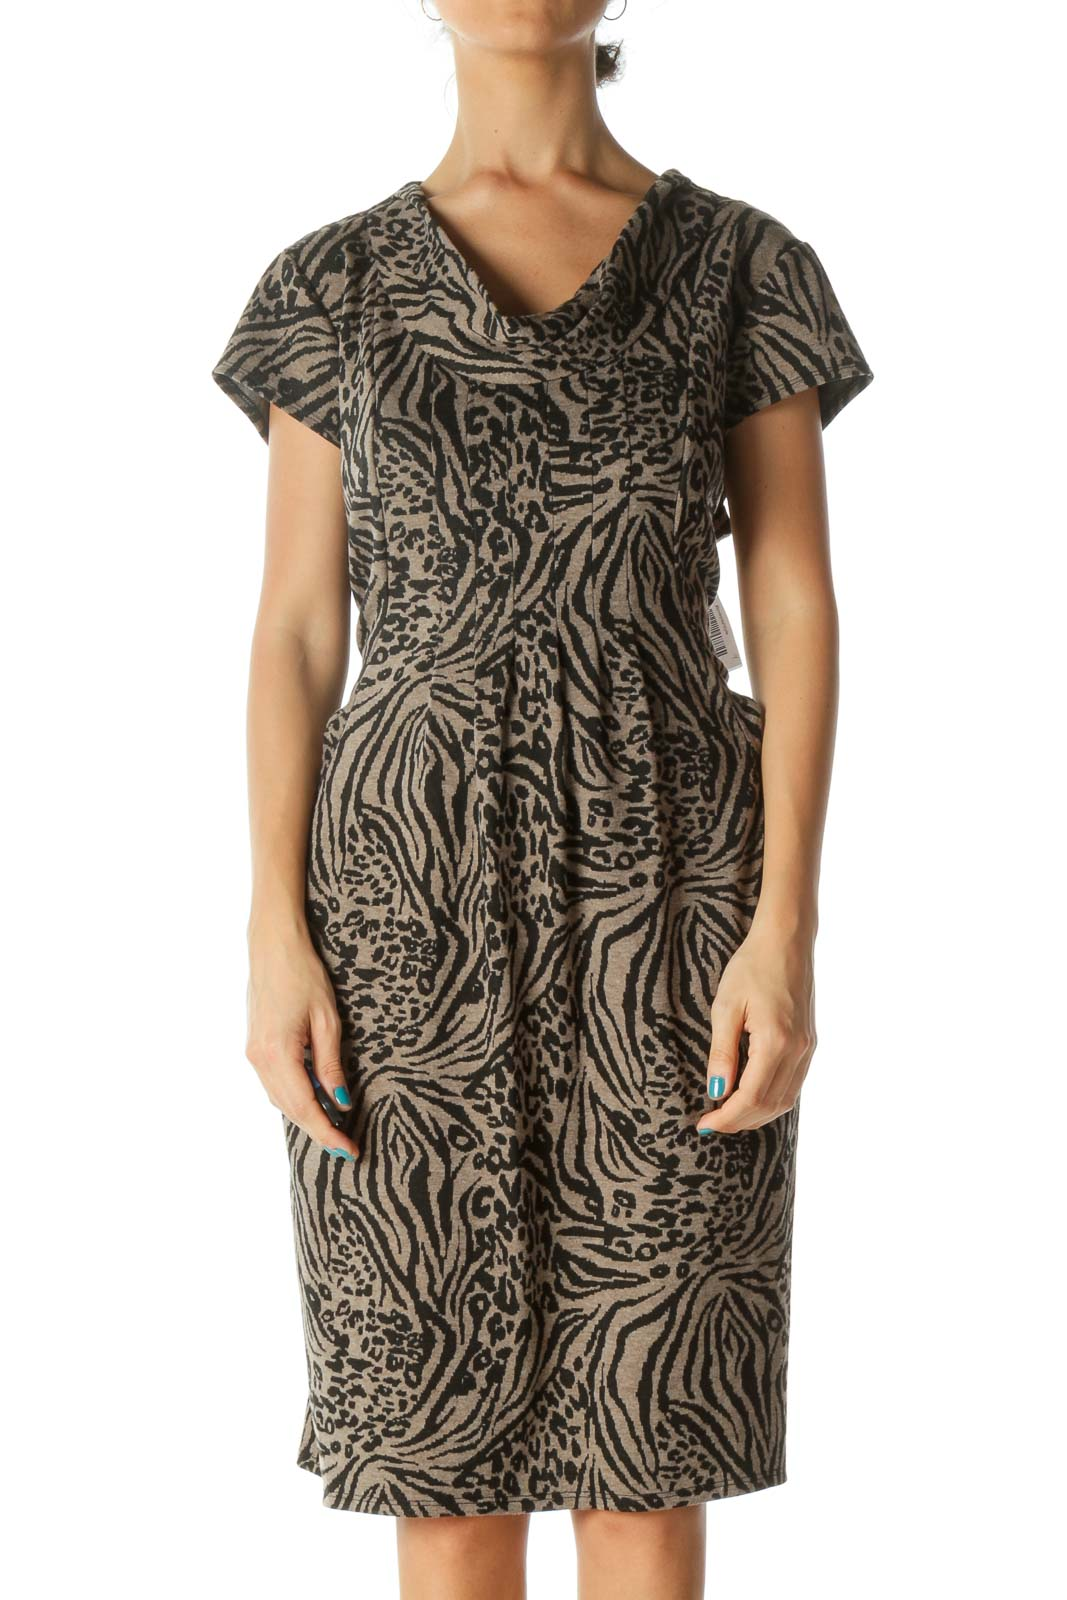 Brown and Black Animal Print Cowl Neck Cap Sleeve Knit Dress Front